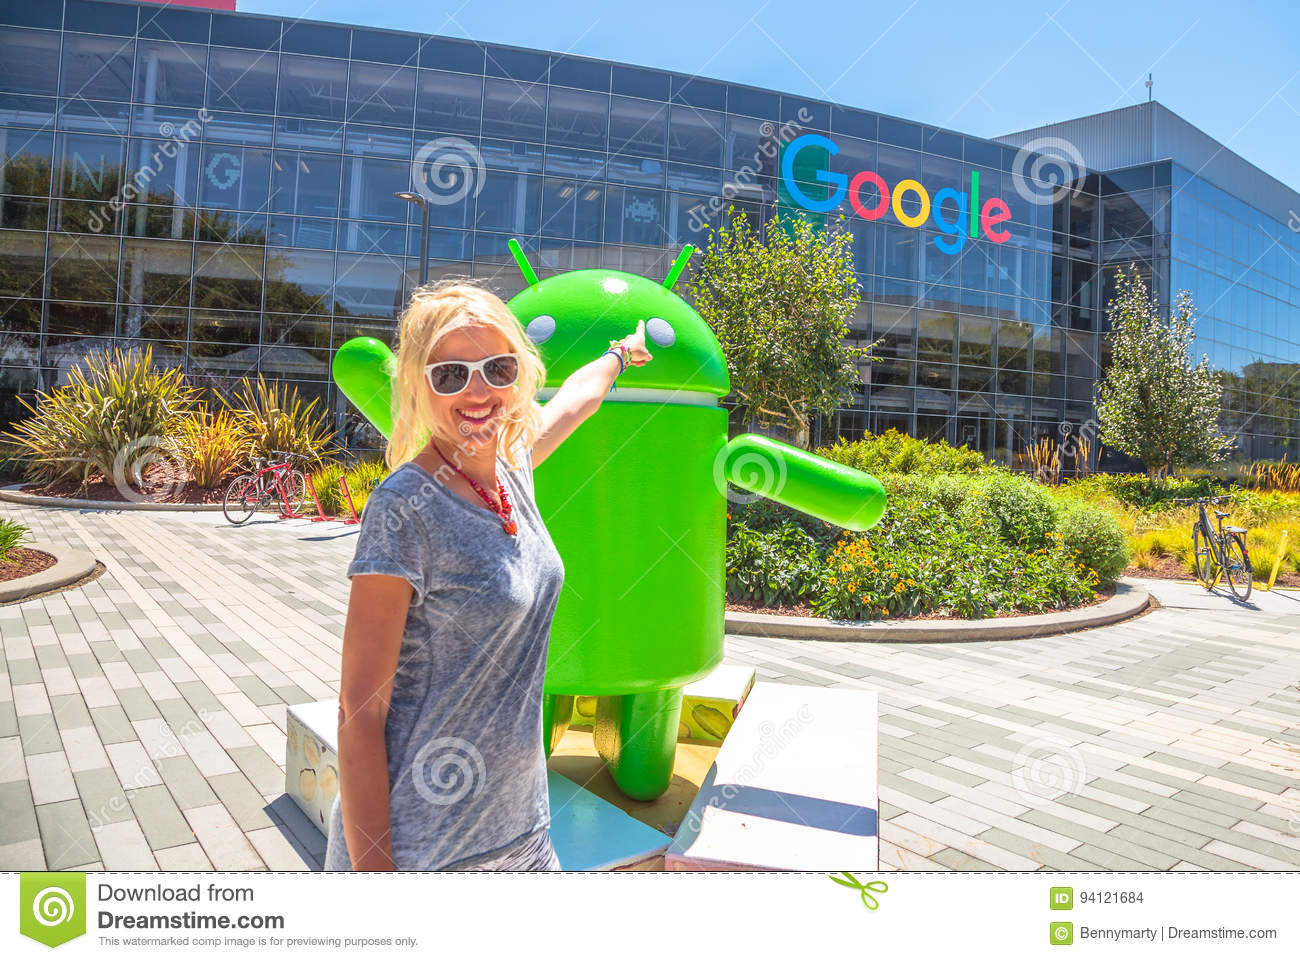 How to Visit Google Headquarters How to Visit Google Headquarters new foto